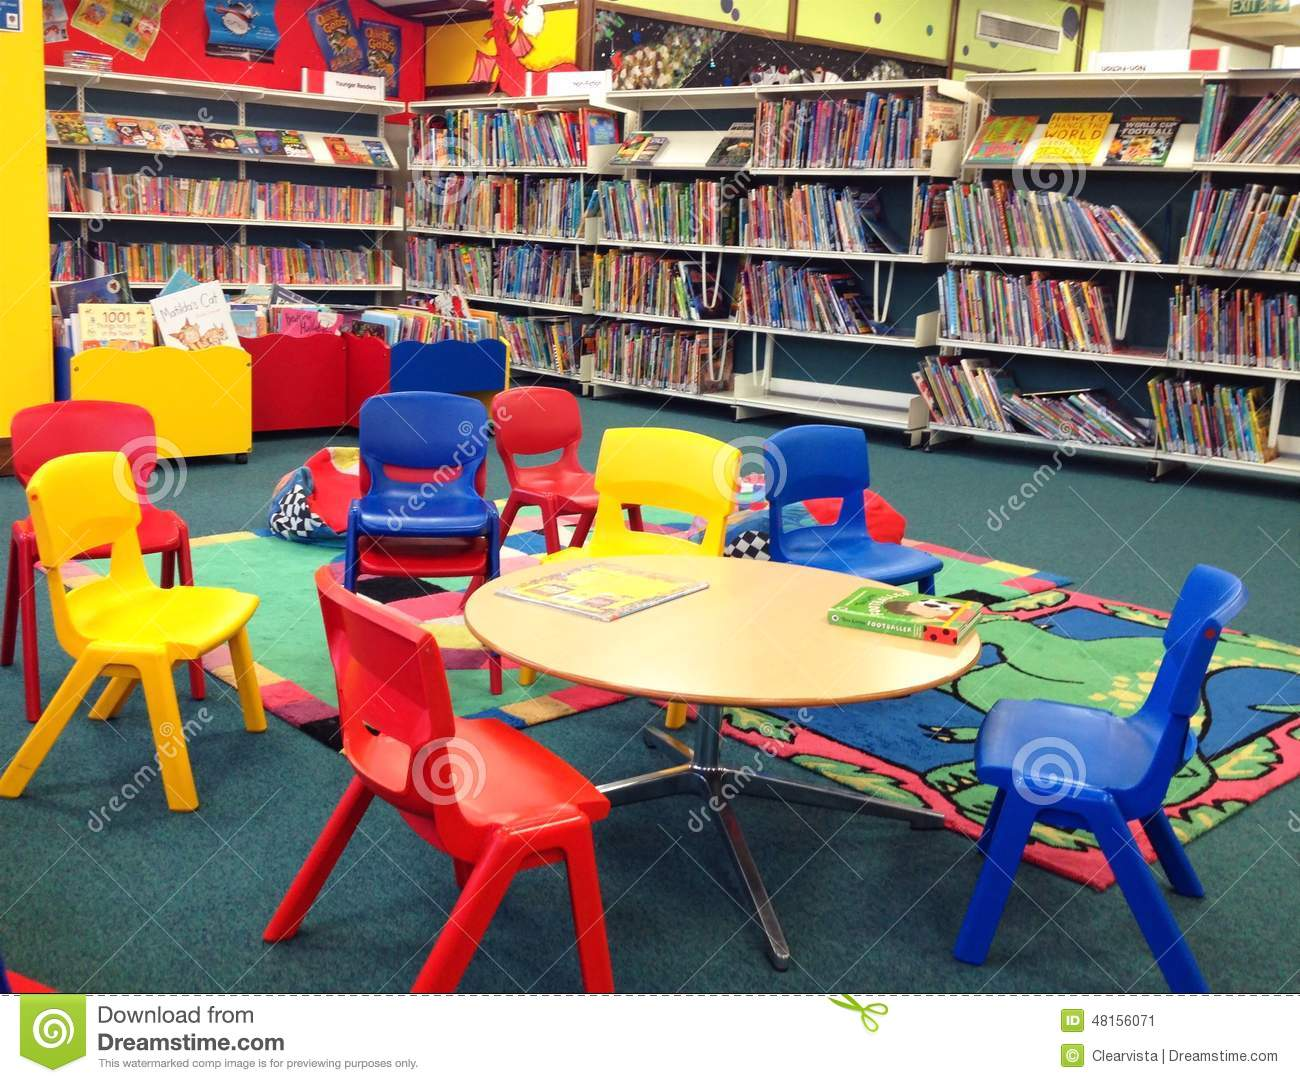 Editorial Photo Children S Seating Public Library Tables Books Background Bedford United Kingdom Image48156071 on books desktop themes